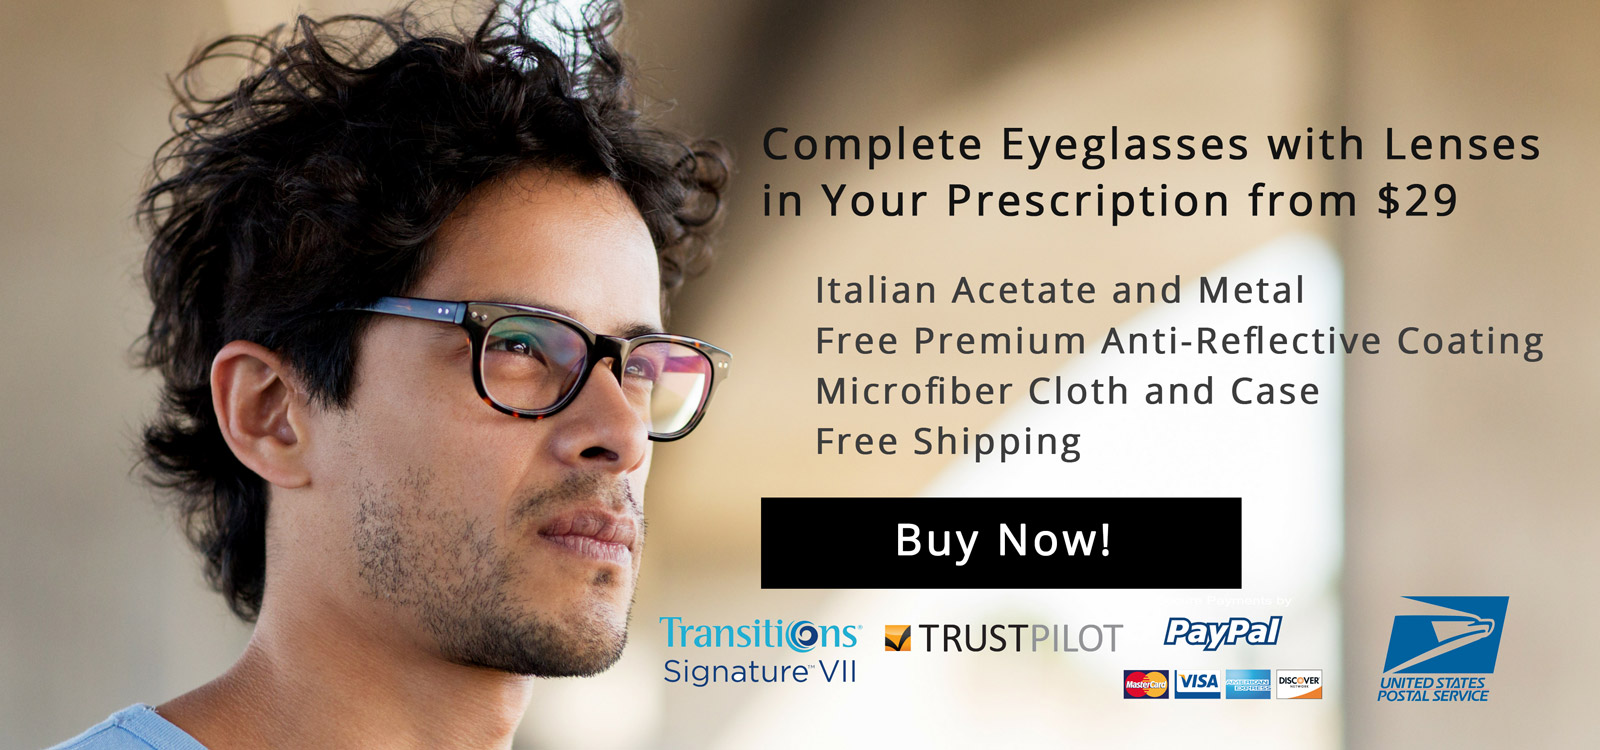 Complete Eyeglasses with Lenses in Your Prescription from $29